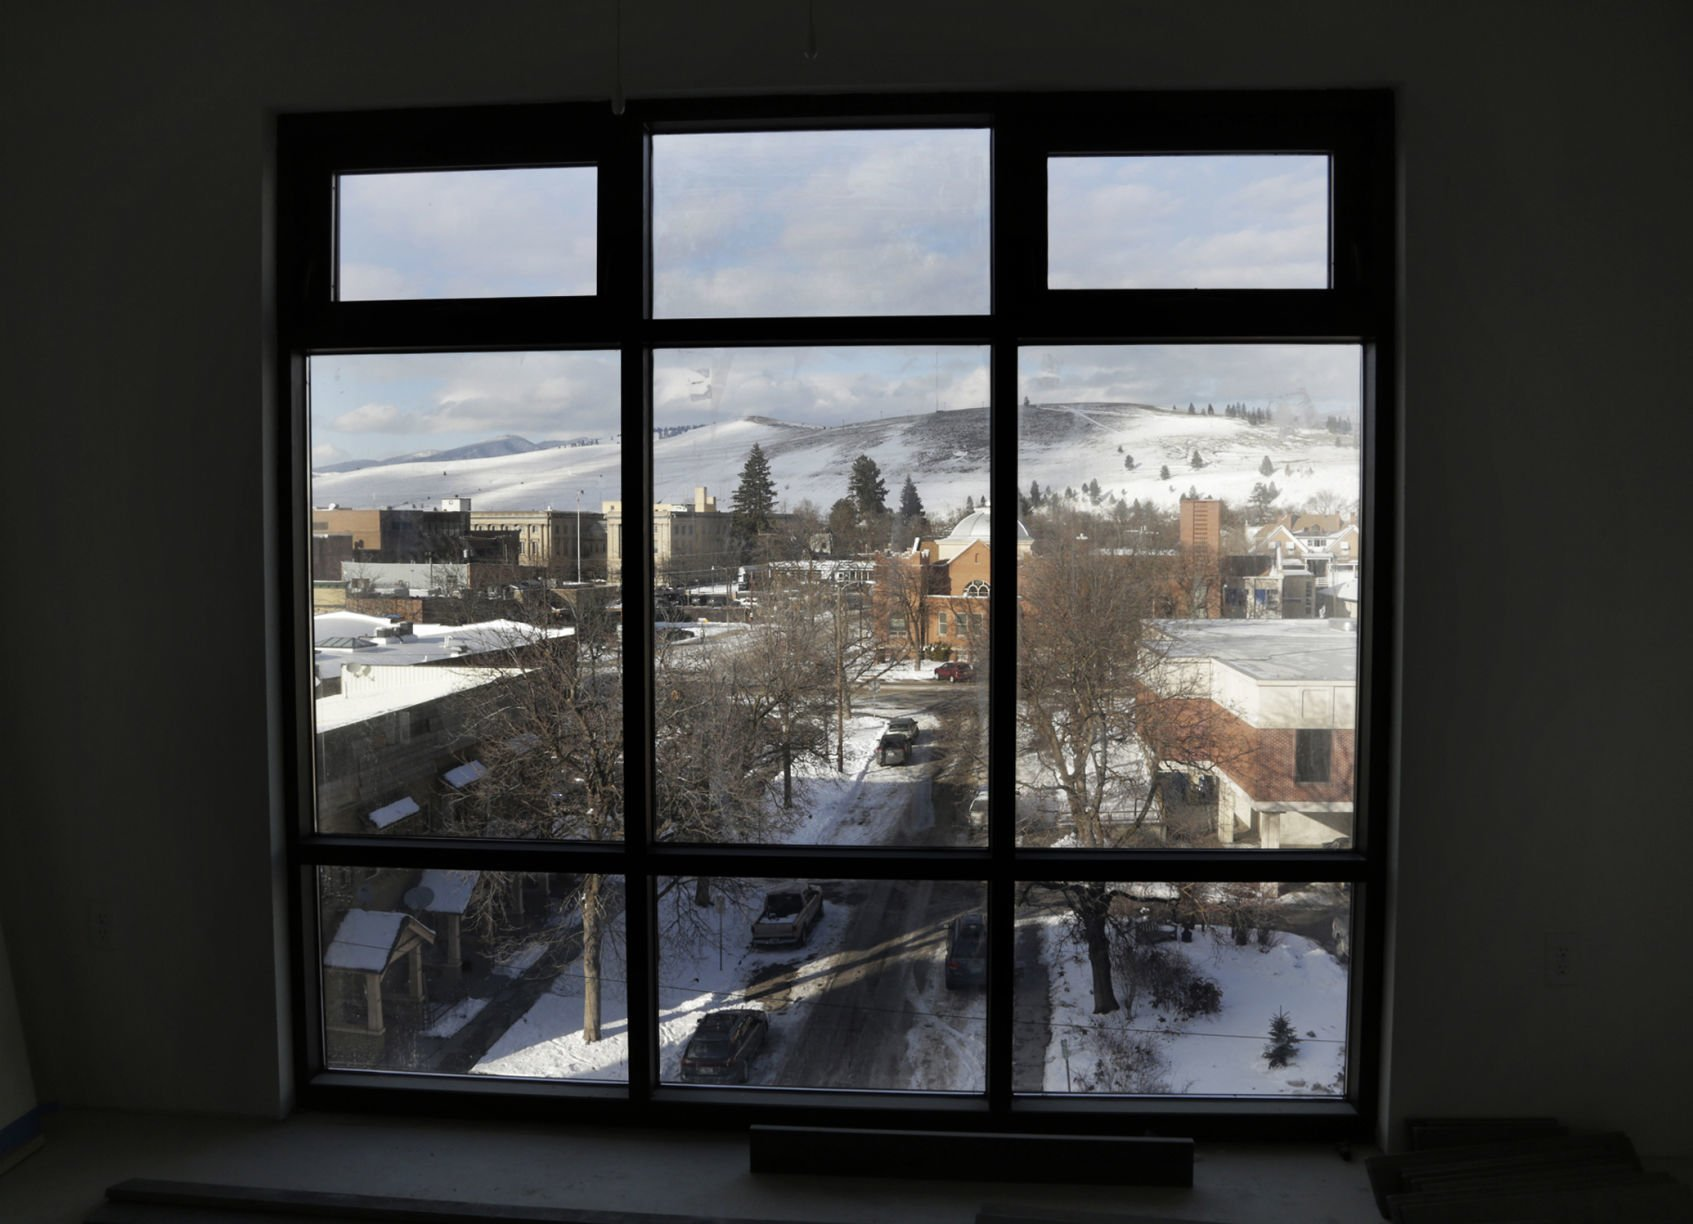 New Missoula Student Housing Complex, Set To Partially Open In May, Could  Ease Housing Crunch